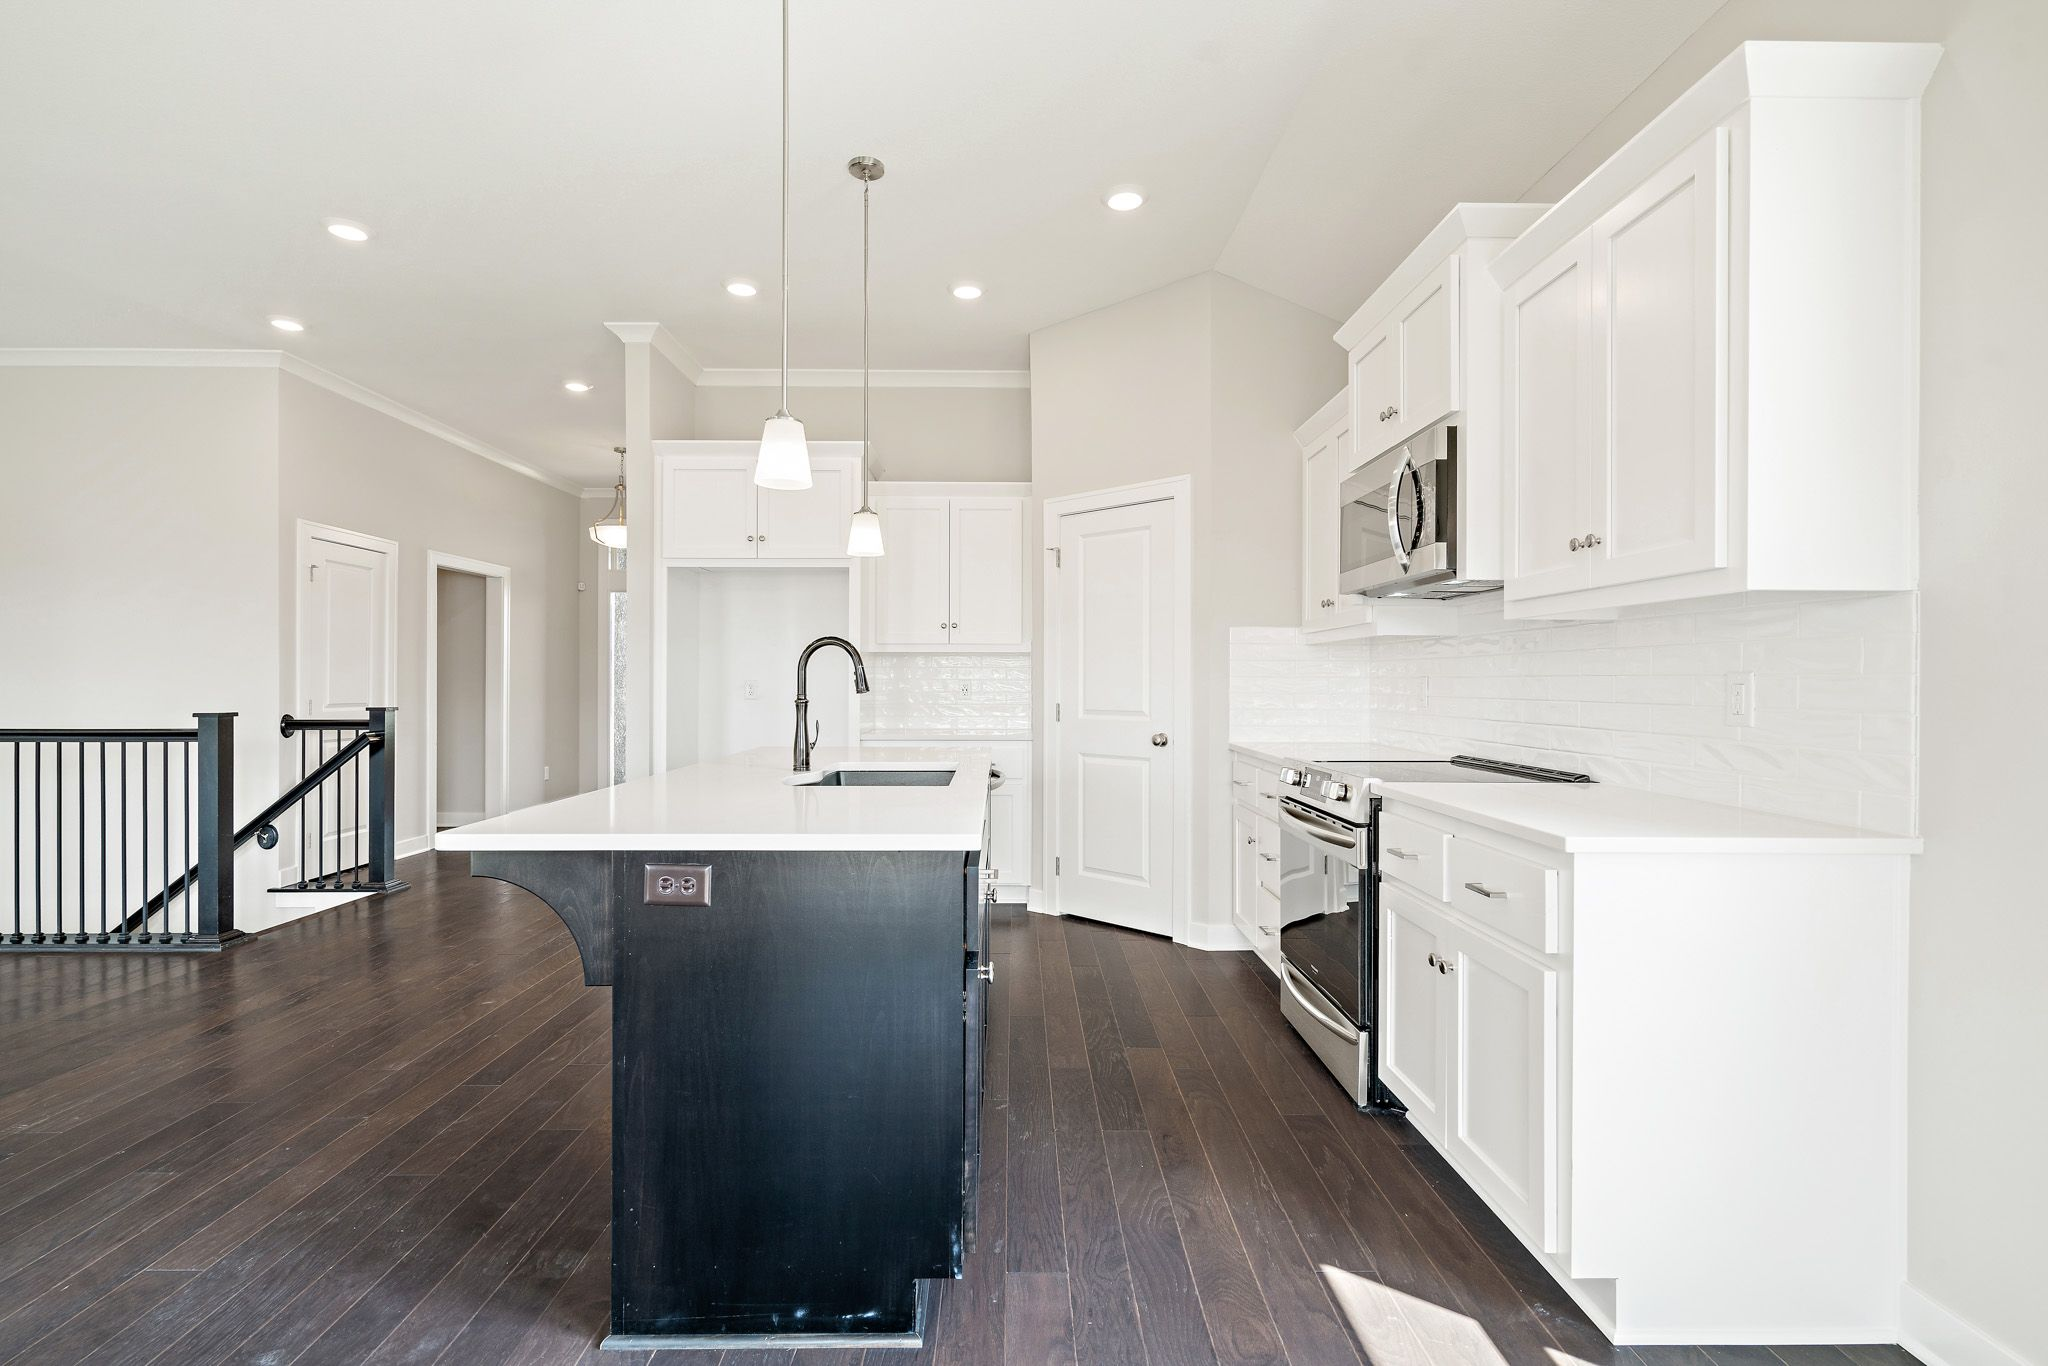 Kitchen featured in the Charlotte - Care Free By Summit Homes in Kansas City, KS